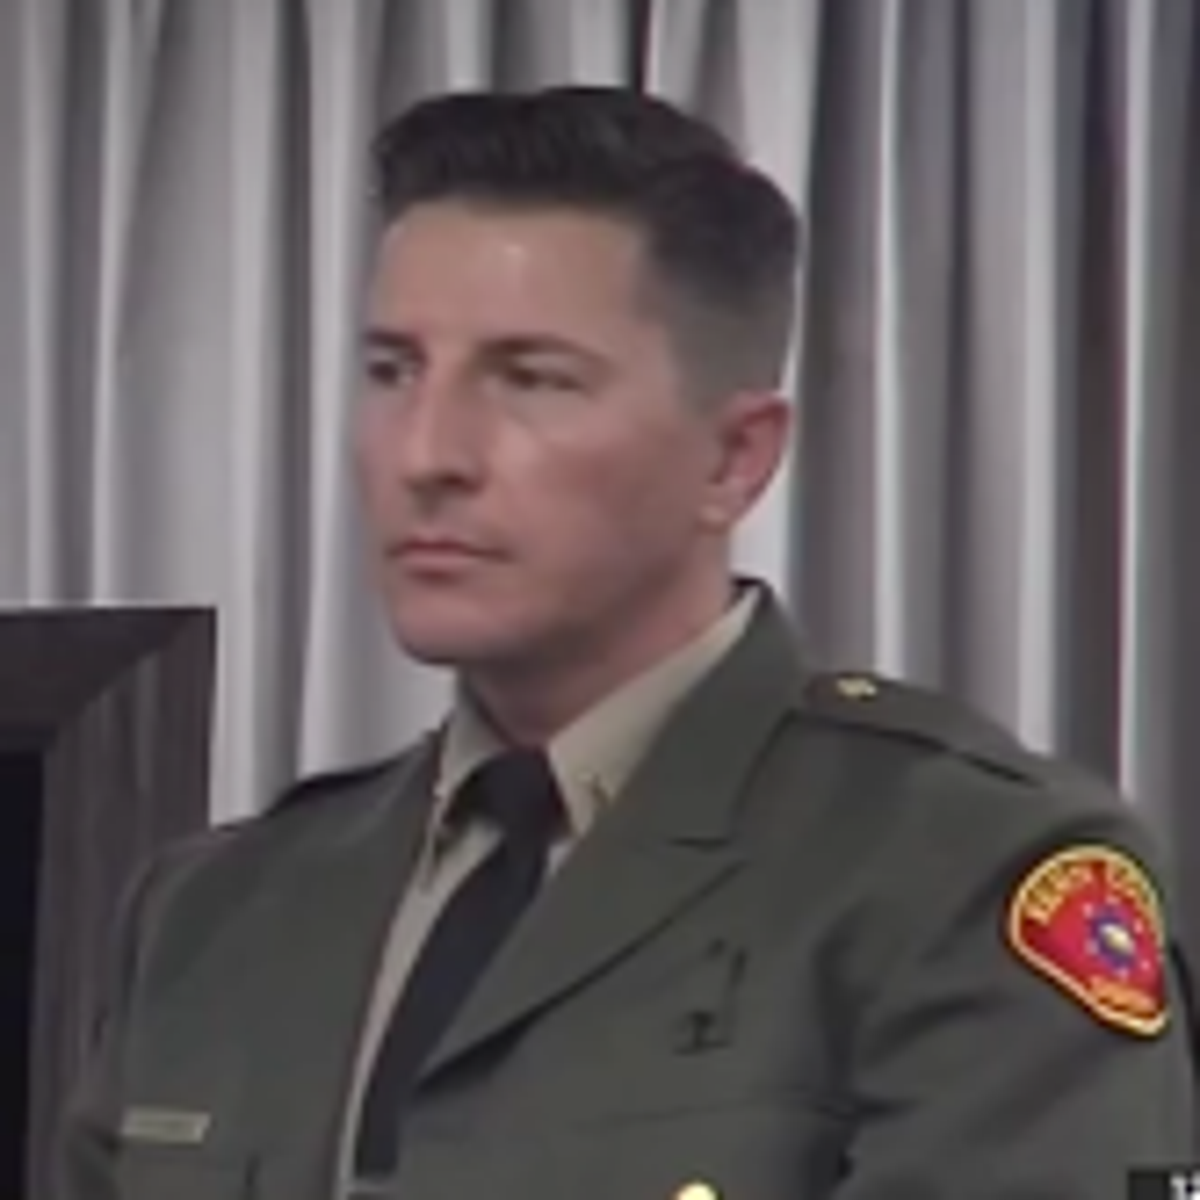 Another Kern County sheriff's official under investigation